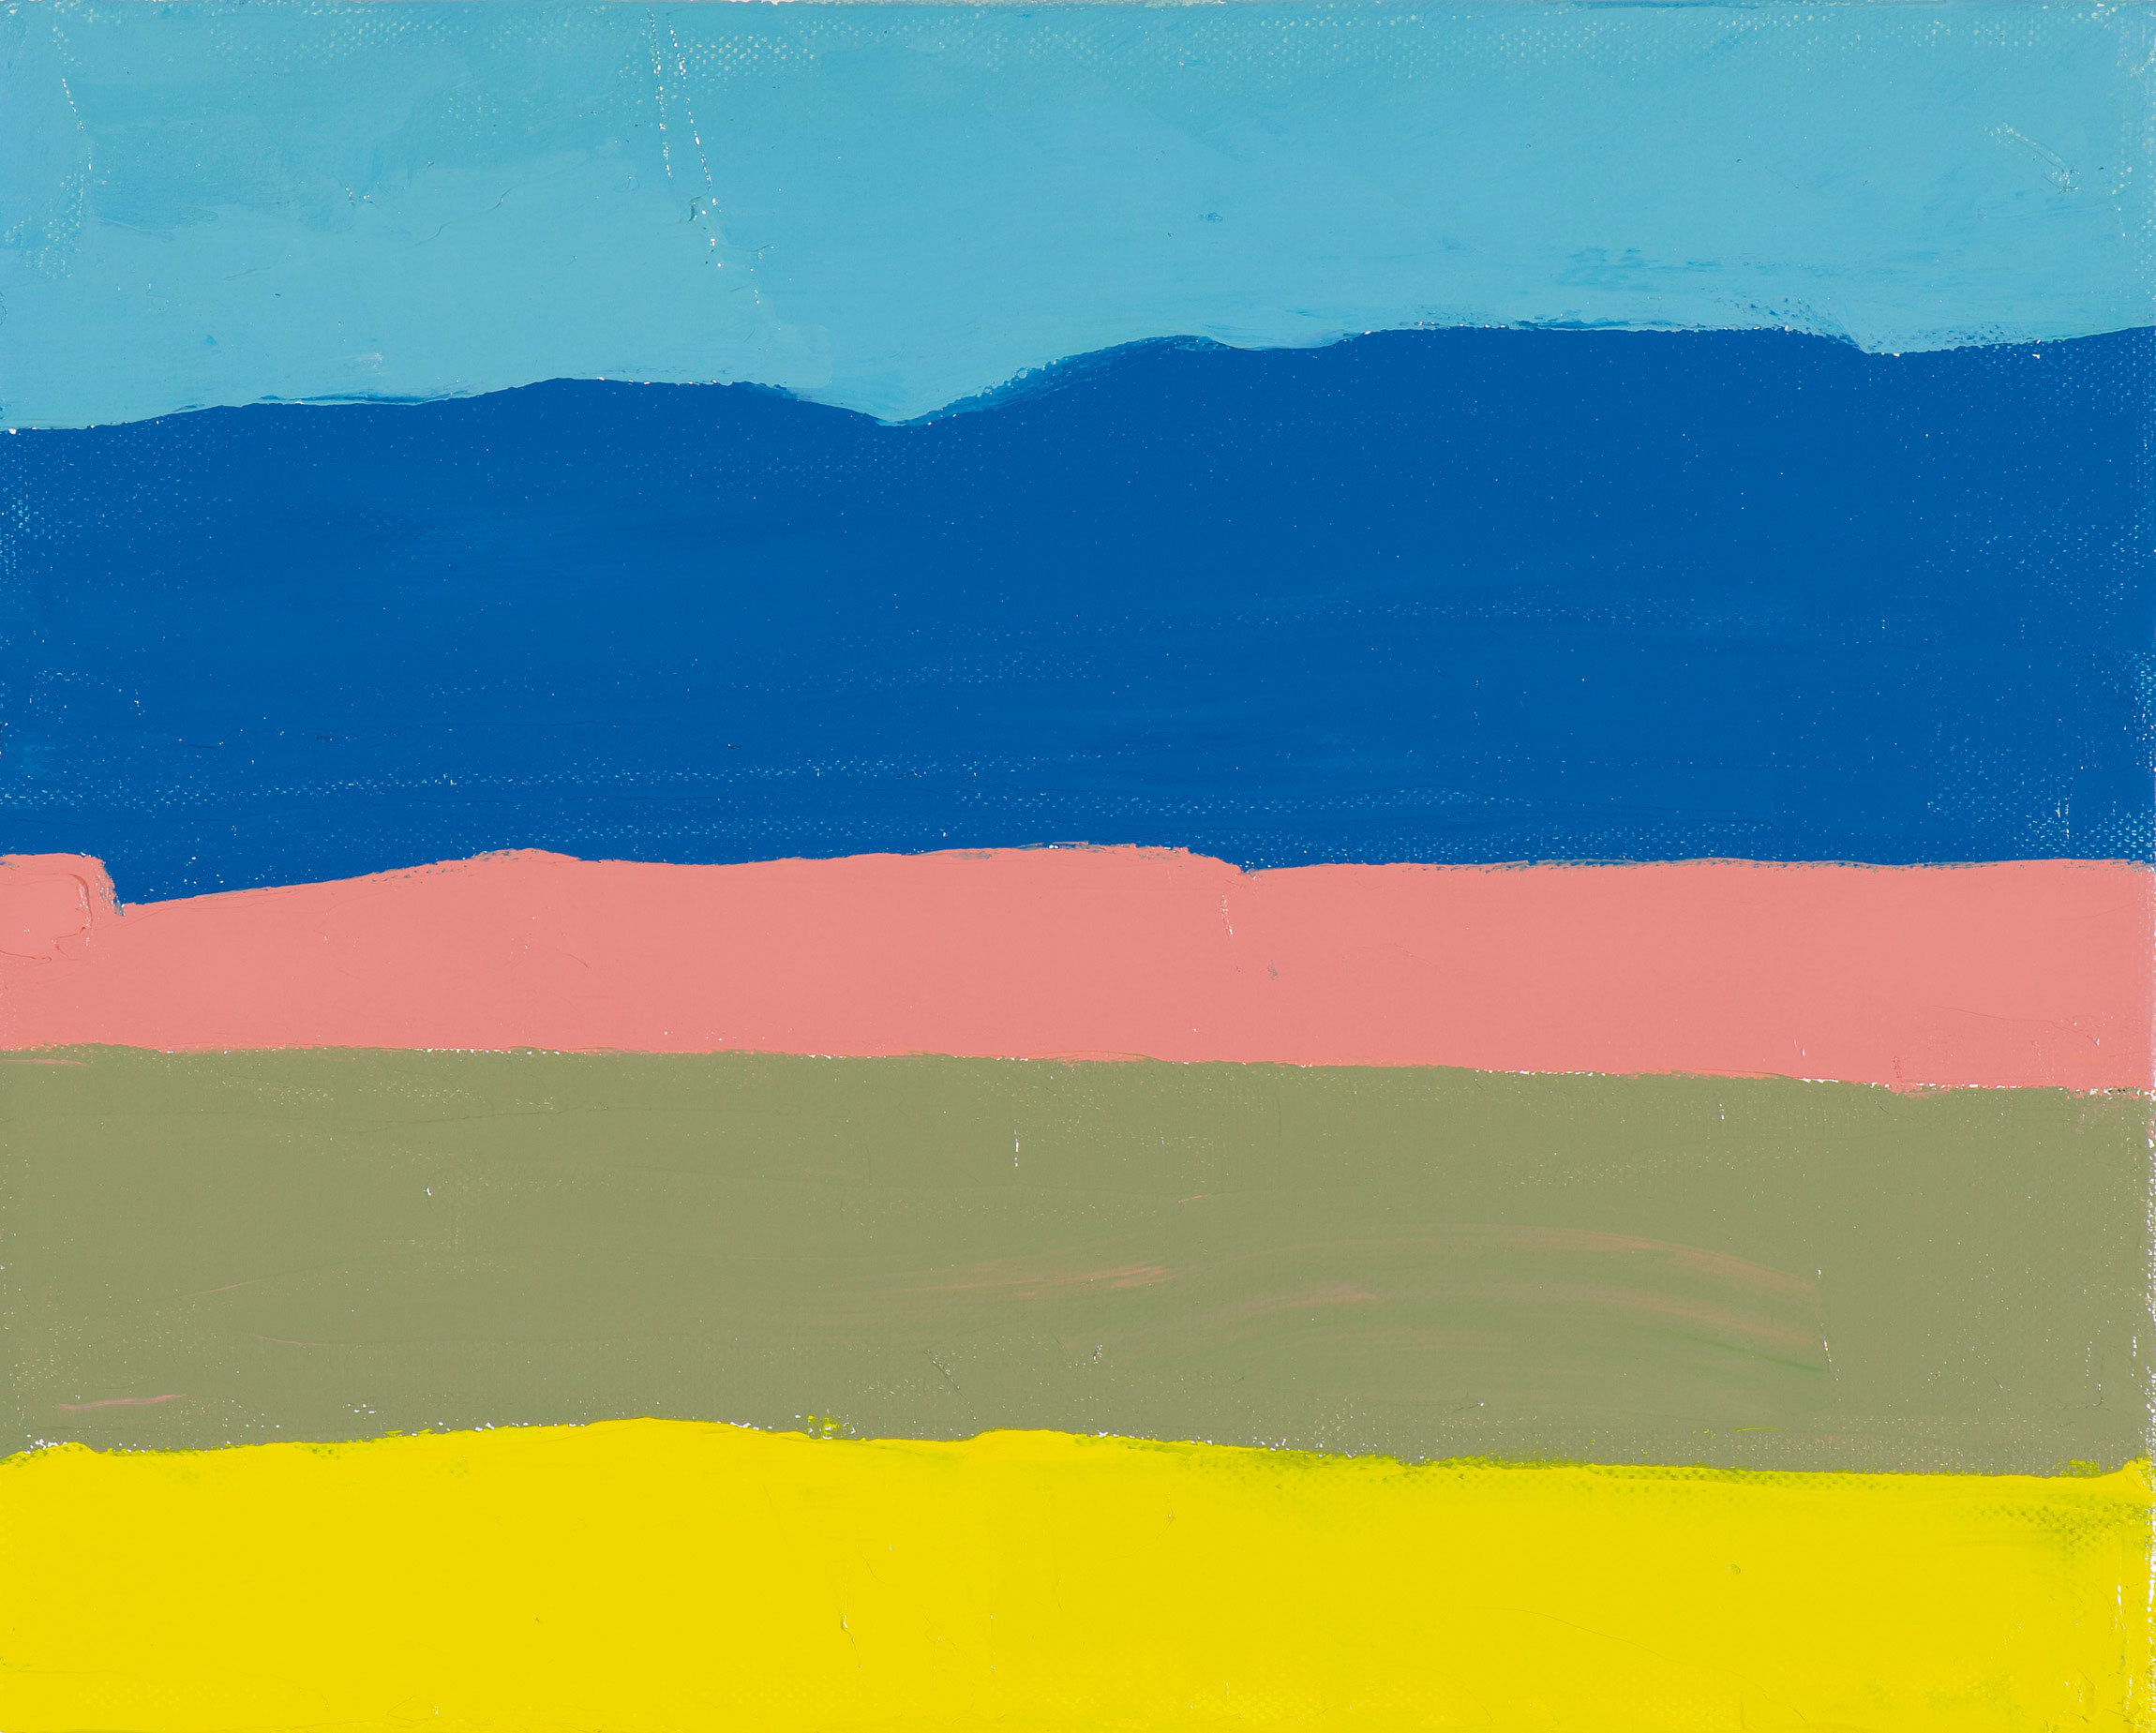 An abstract landscape composed of five swaths of color: light blue, darker blue, soft pink, olive green and yellow